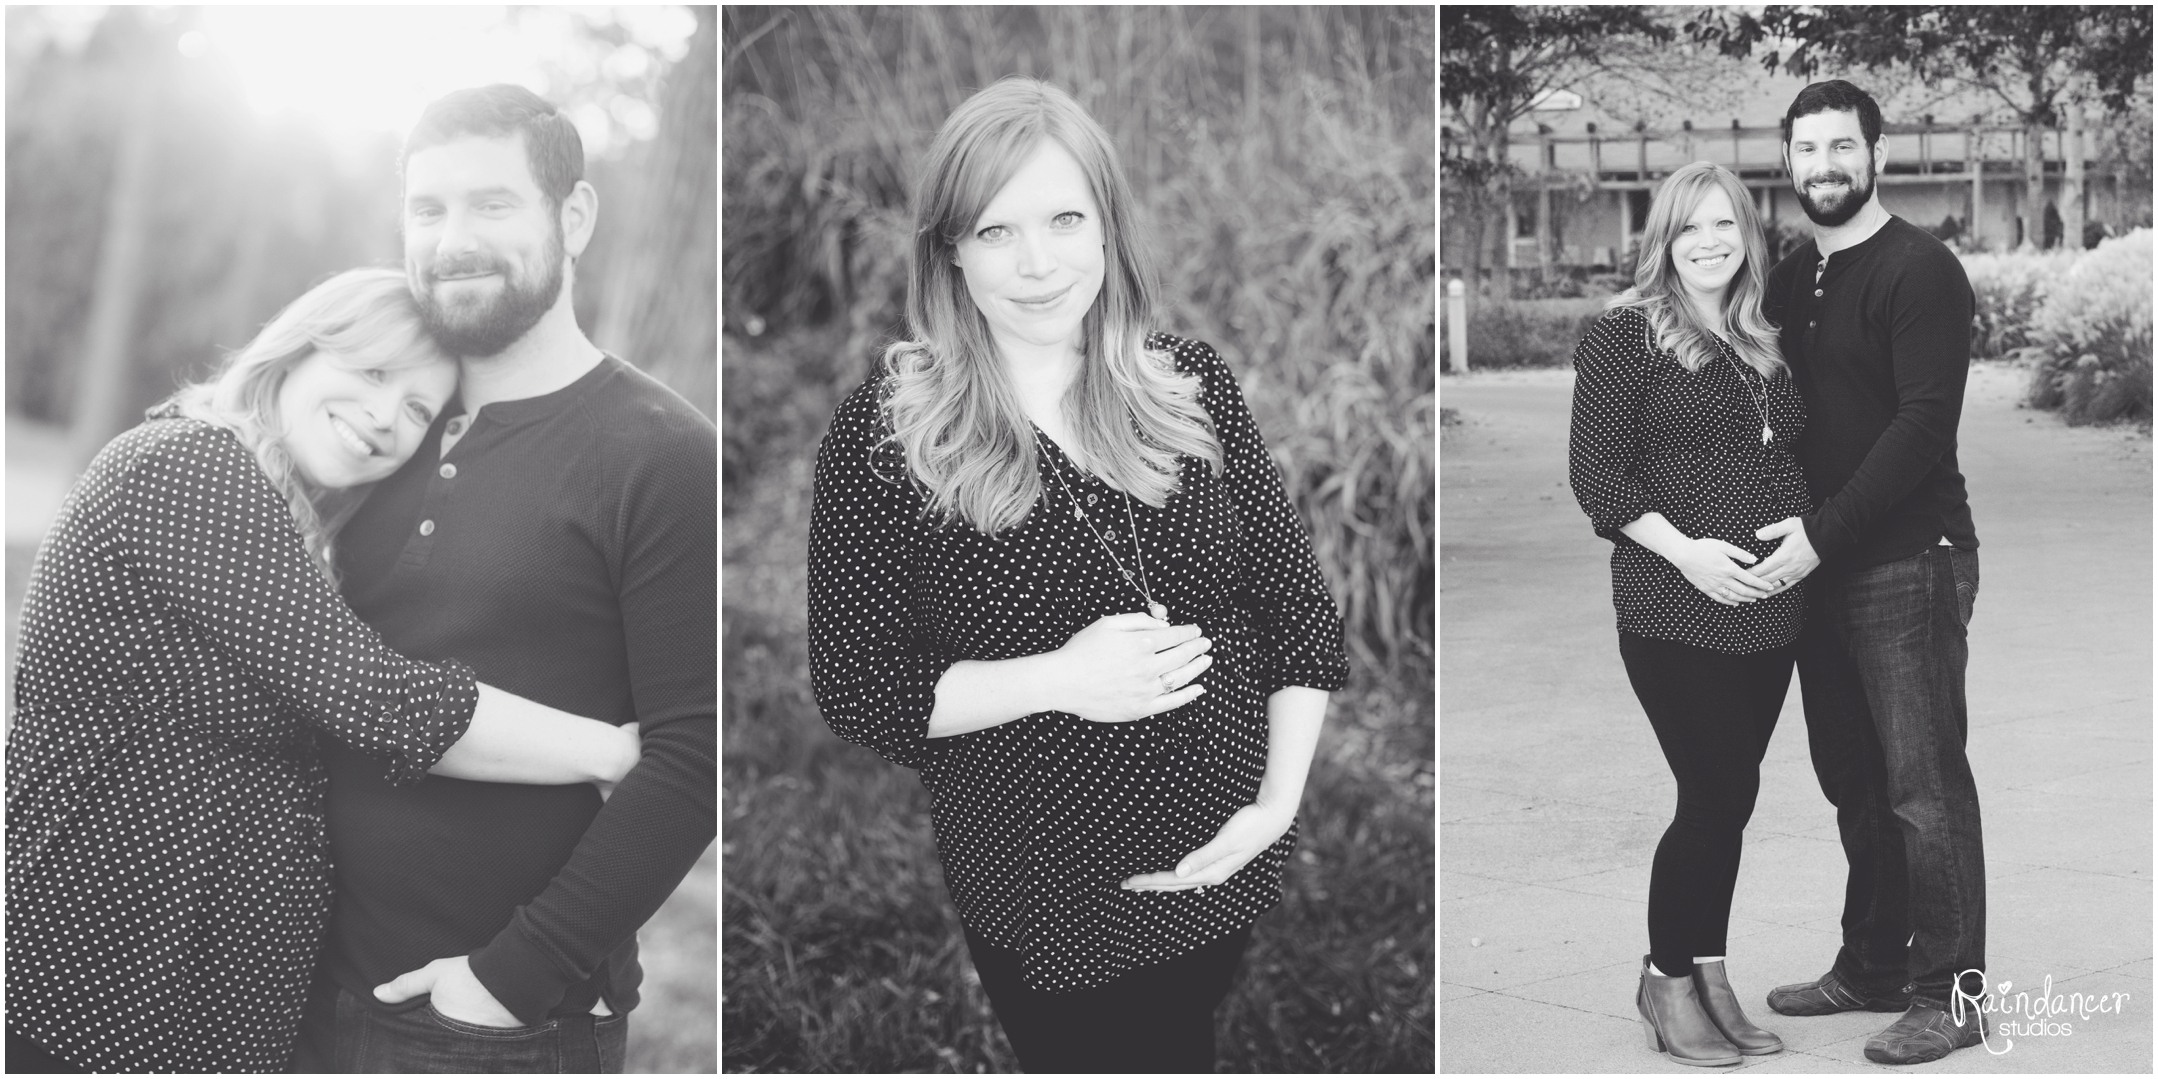 Indianapolis Maternity photographer, Indy maternity photographer, Indianapolis family photographer, Indy family photographer, Indy maternity photography, Indianapolis maternity photography, Indy baby photographer, Indianapolis Newborn Photographer, Indianapolis baby photographer